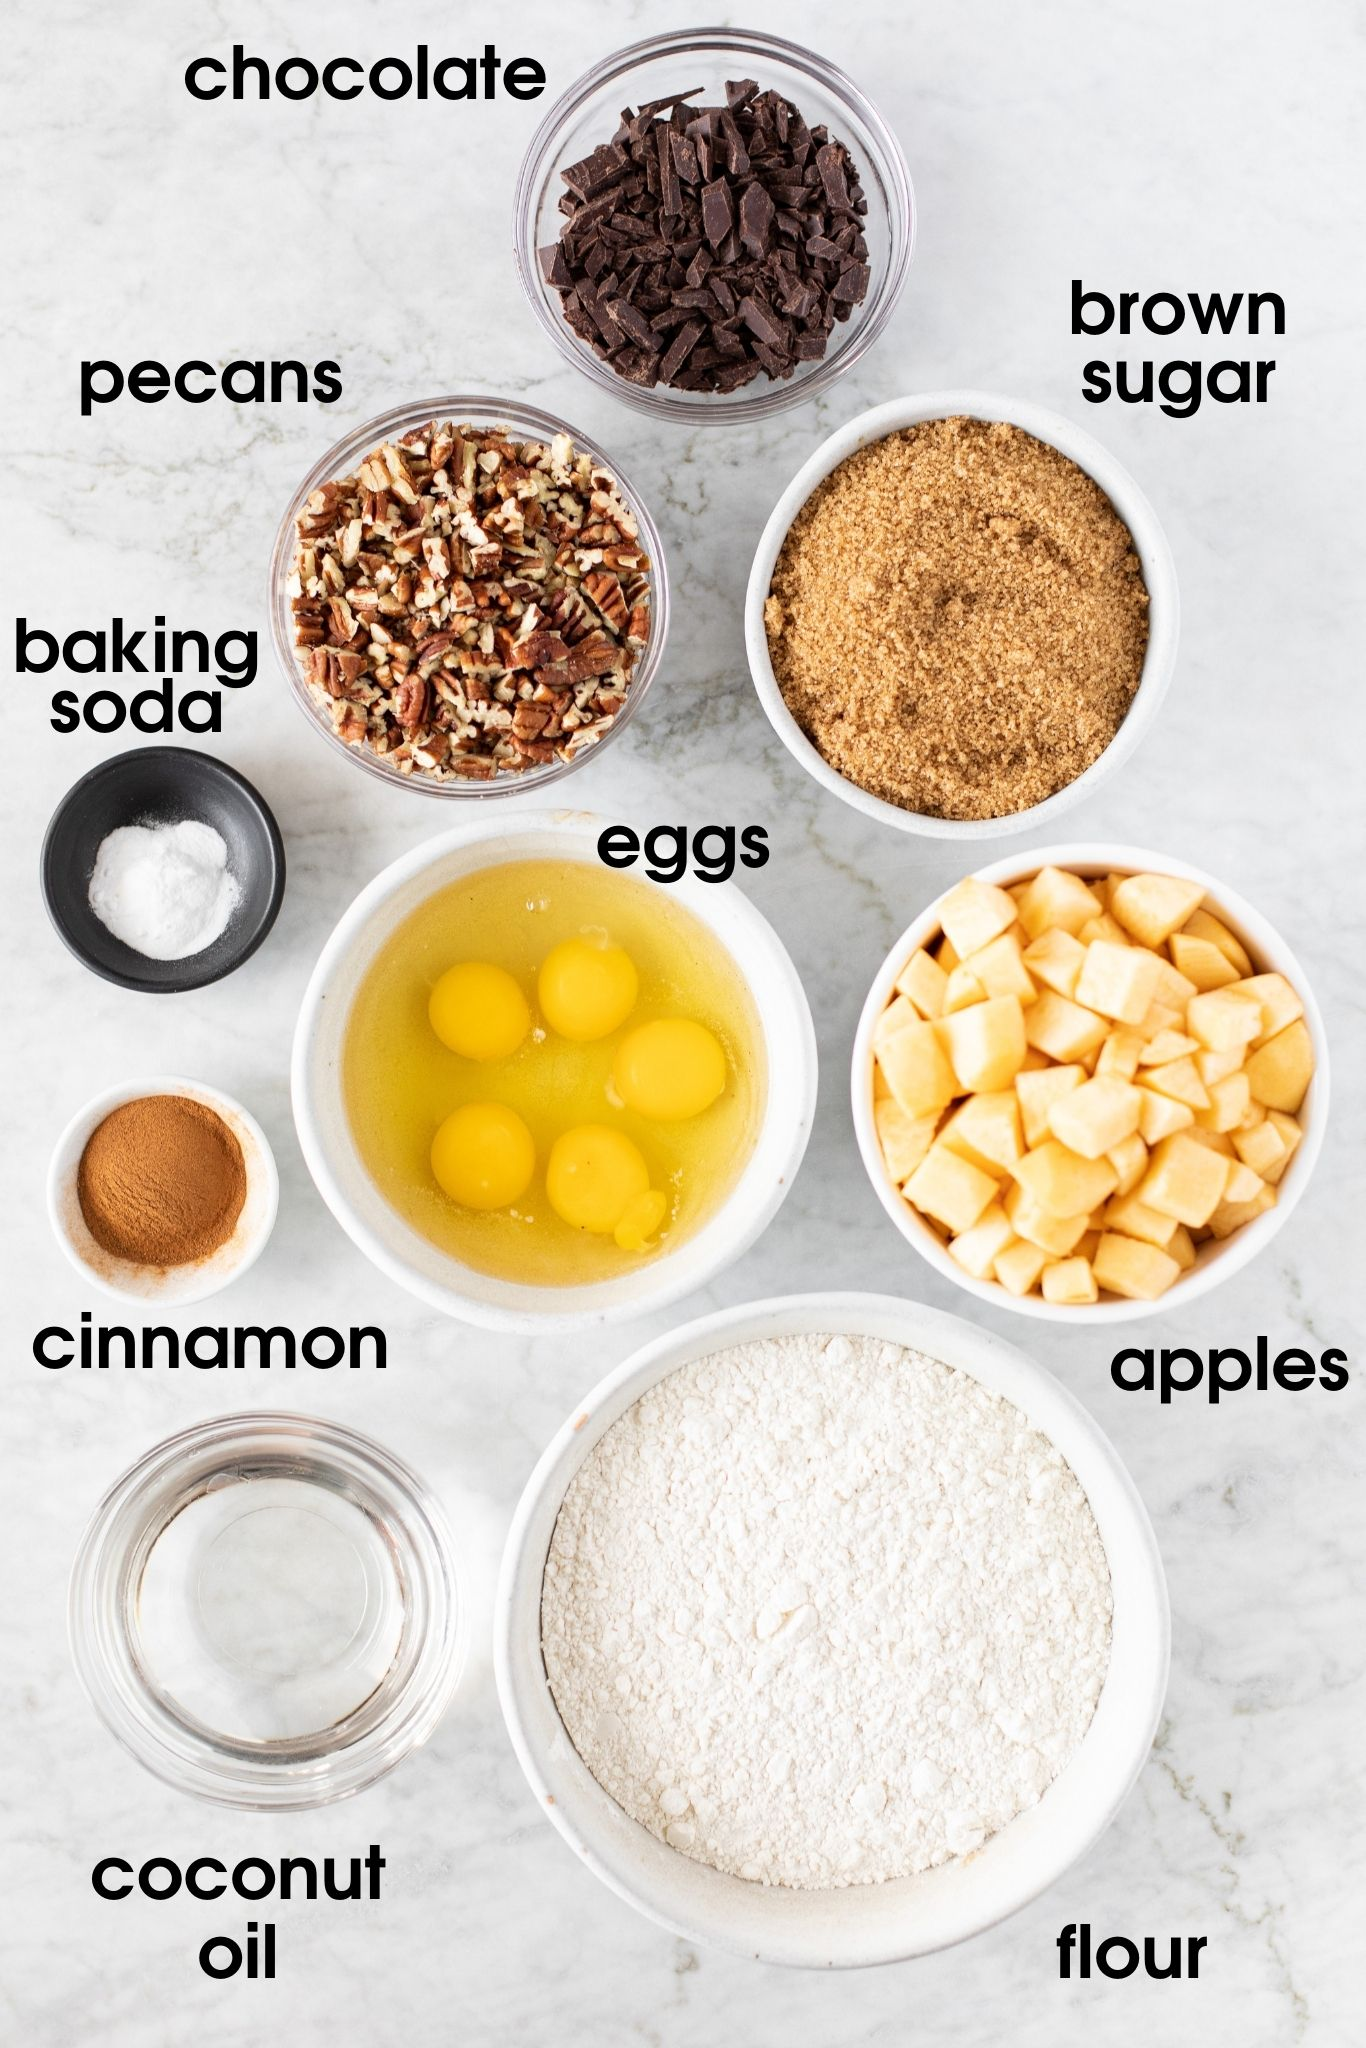 Overview of ingredients for Apple Pecan Chocolate Coffee Cake including chocolate, brown sugar, apples, flour, coconut oil, cinnamon, eggs, baking soda, and pecans | from verygoodcook.com